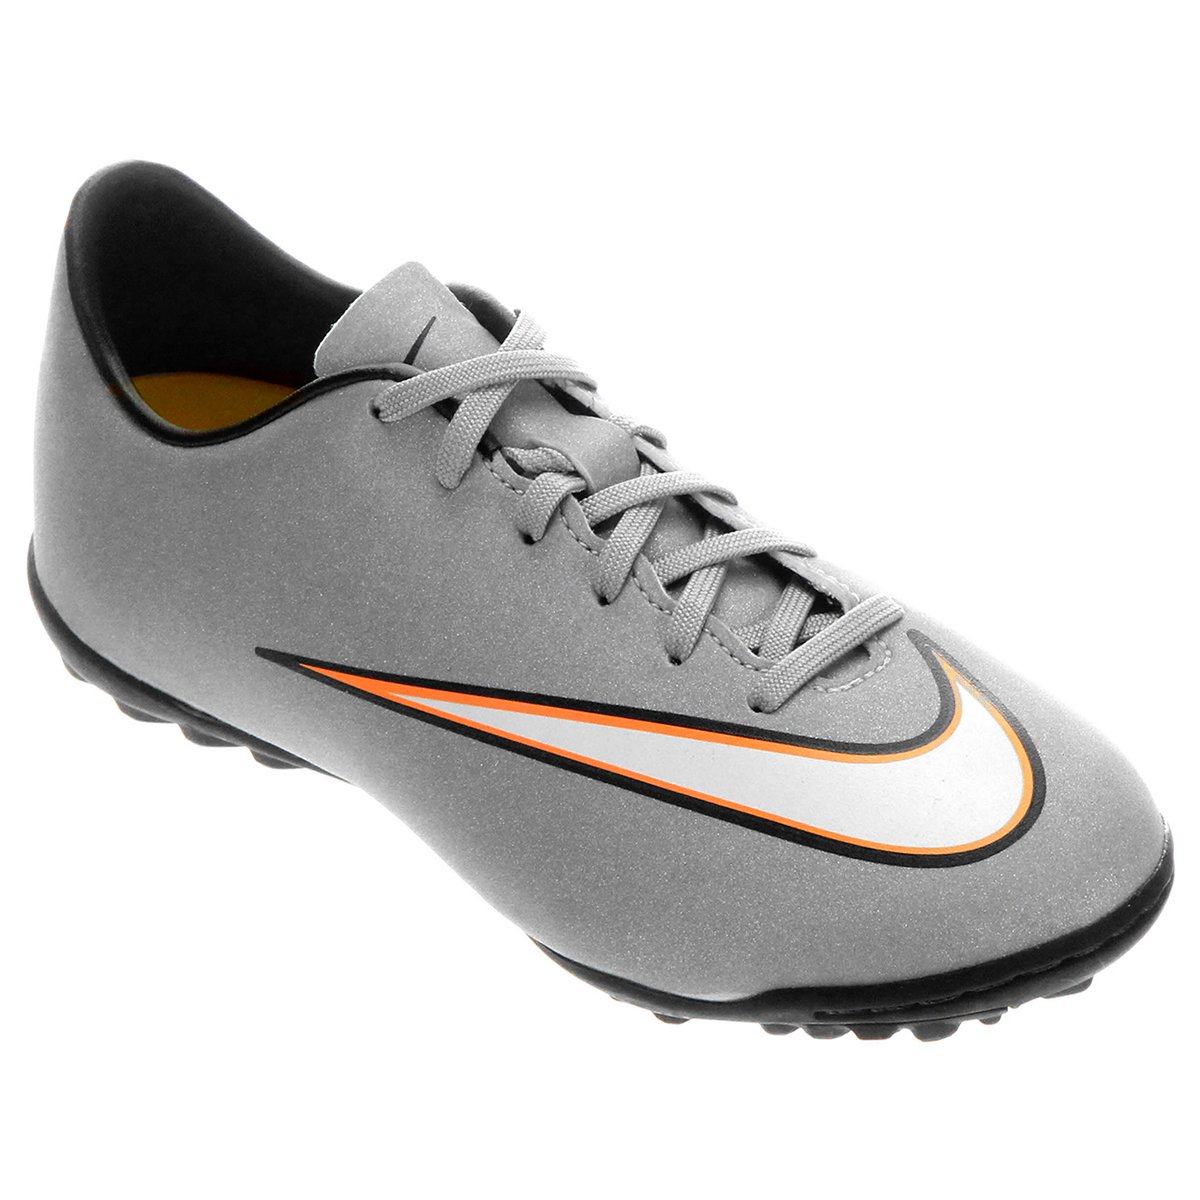 e3eb8cc207ec9 ... where can i buy chuteira nike jk mercurial victory 5 c7 tf society  infantil cinzabranco 9da26